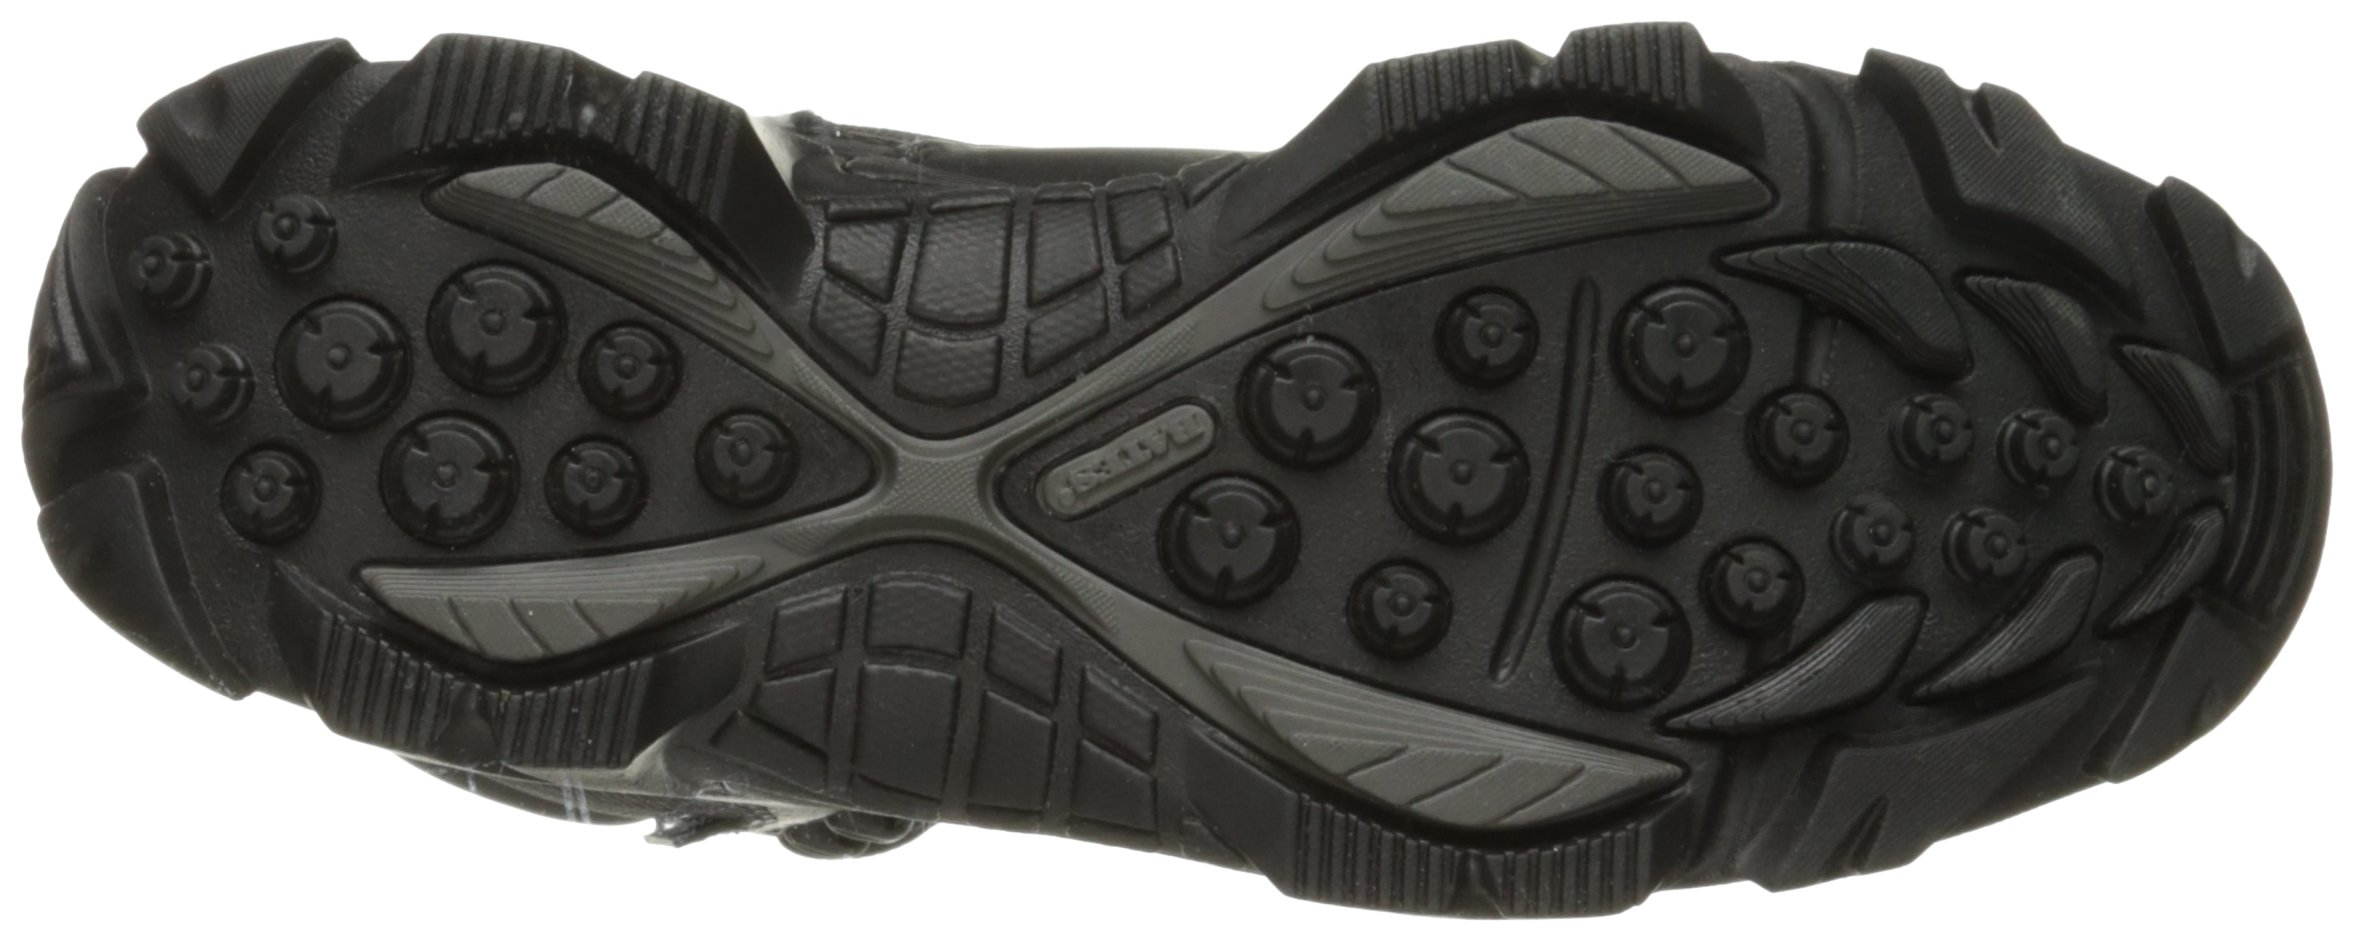 Bates Women's GX-8 Gore-Tex Insulated Side Zip Fire and Safety Shoe, Black, 9 M US by Bates (Image #3)